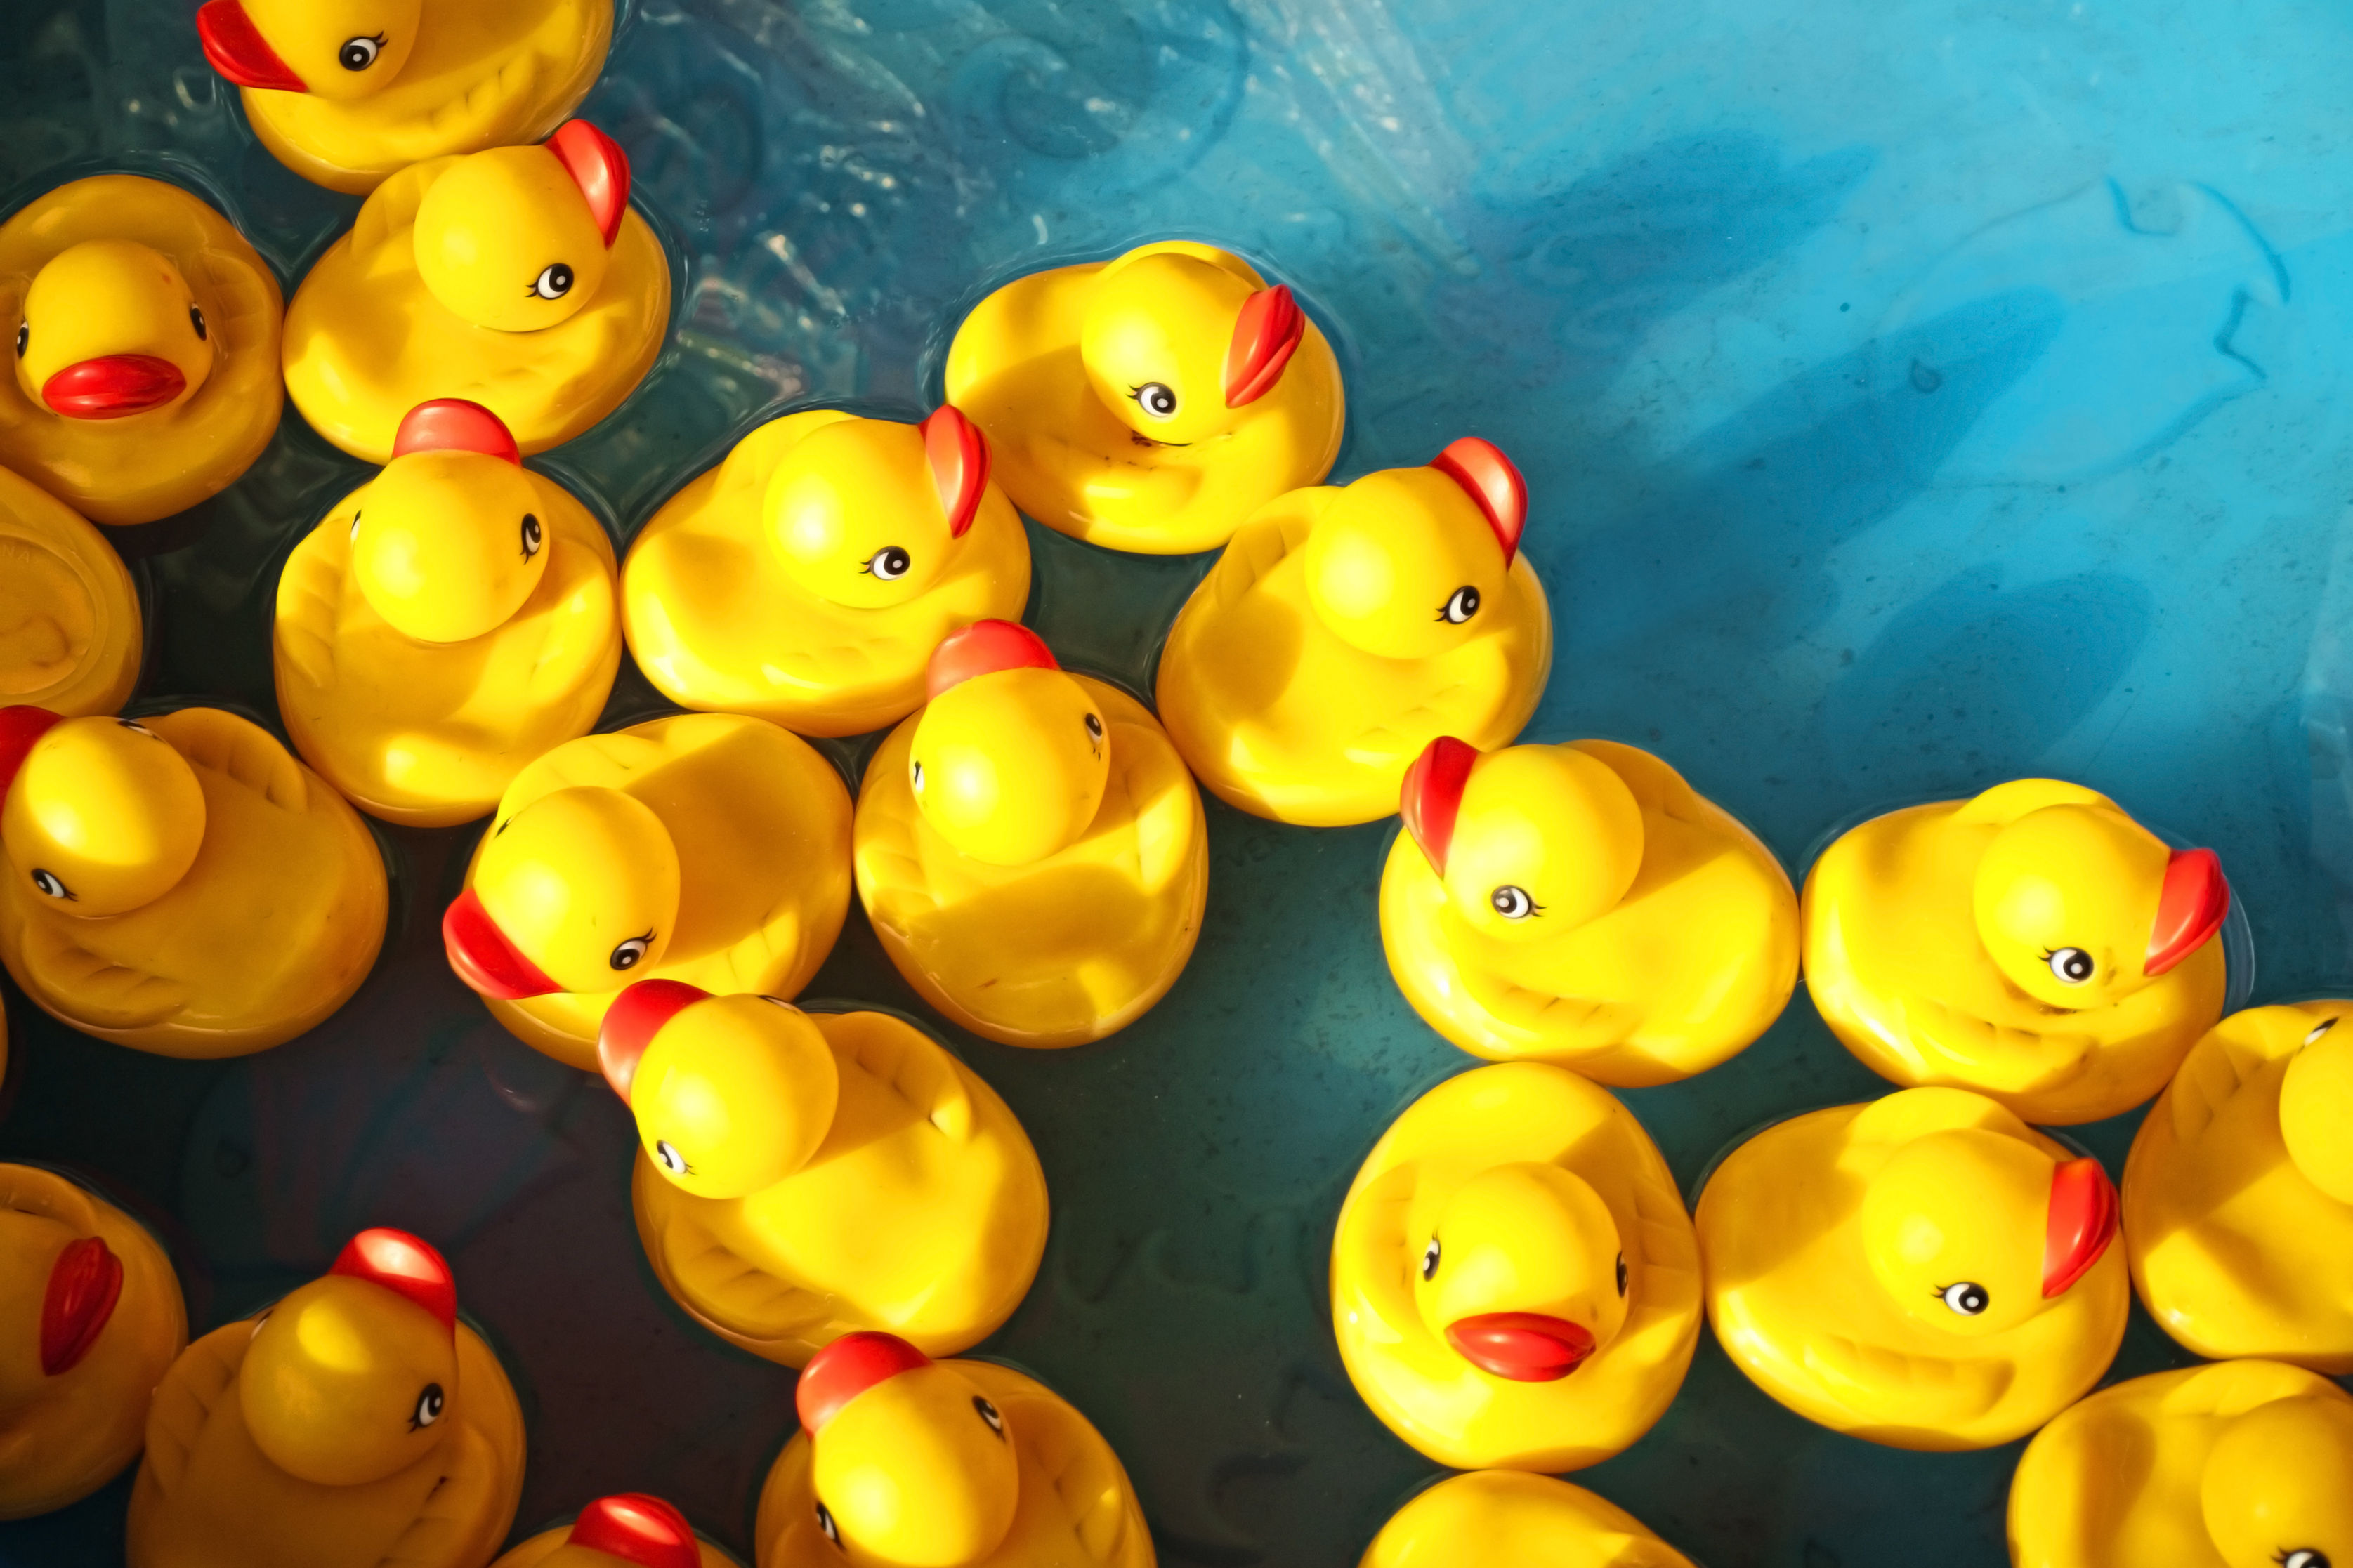 The Adorable Rubber Ducky Is Actually a Haven for Nasty Bacteria, Scientists Say